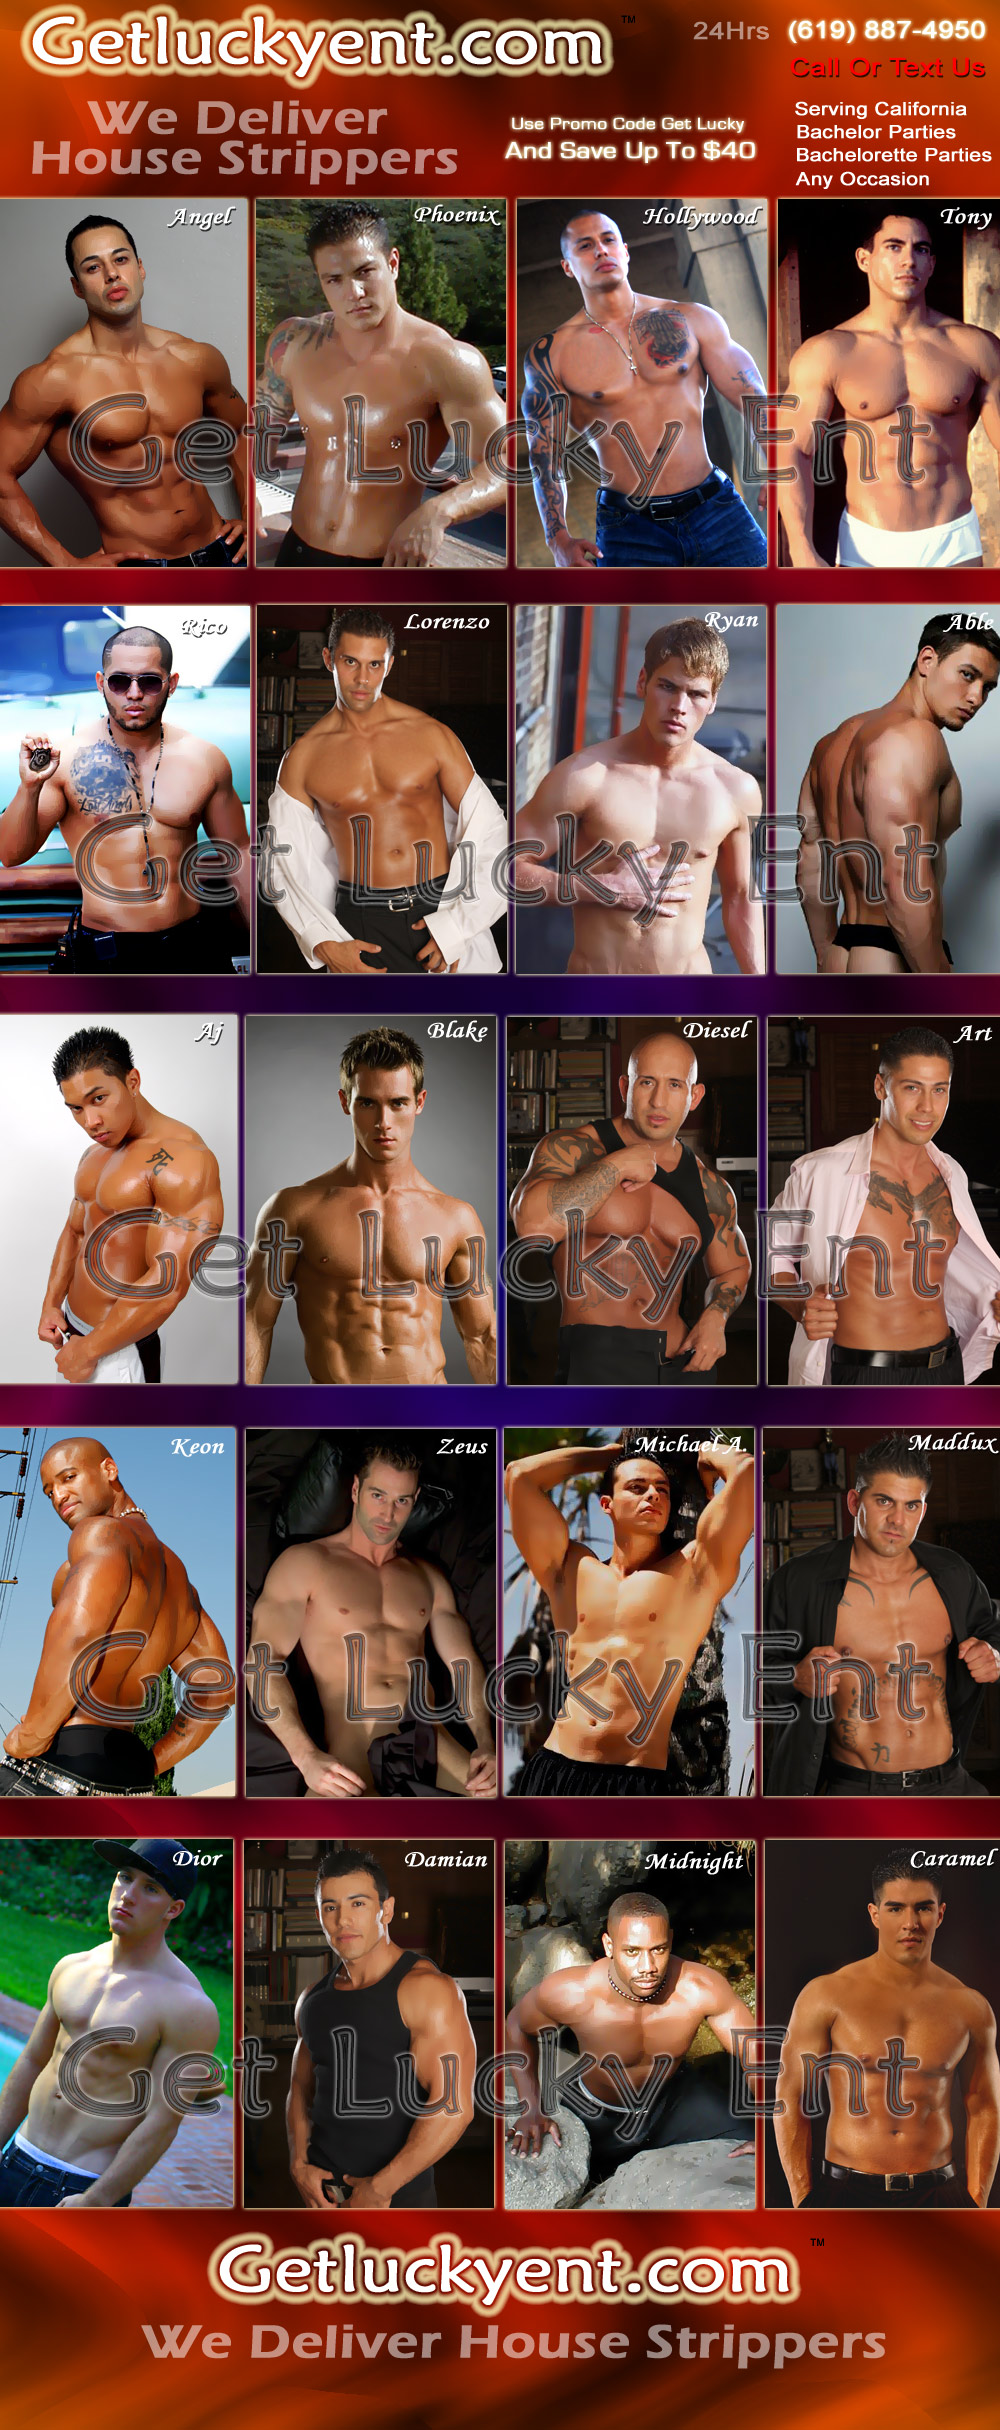 Get Lucky Entertainment Male Strippers